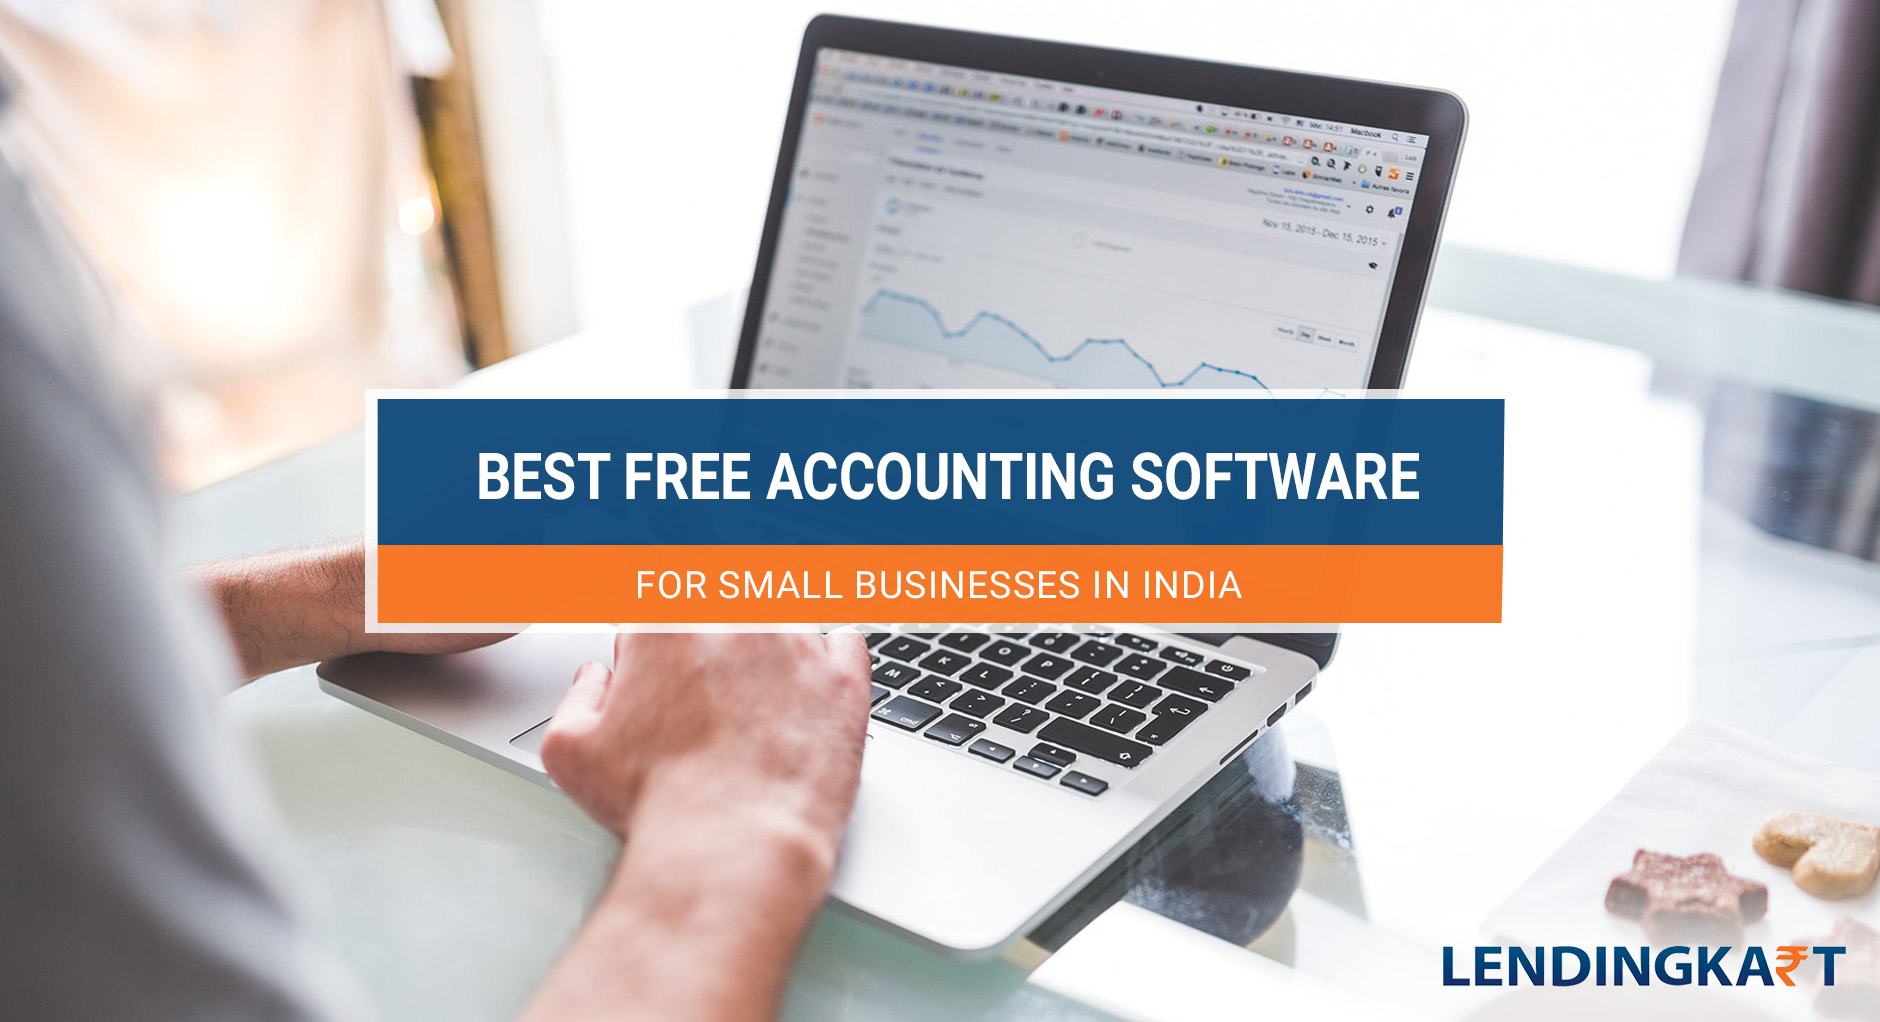 Best Free Accounting Software for Small Businesses in India